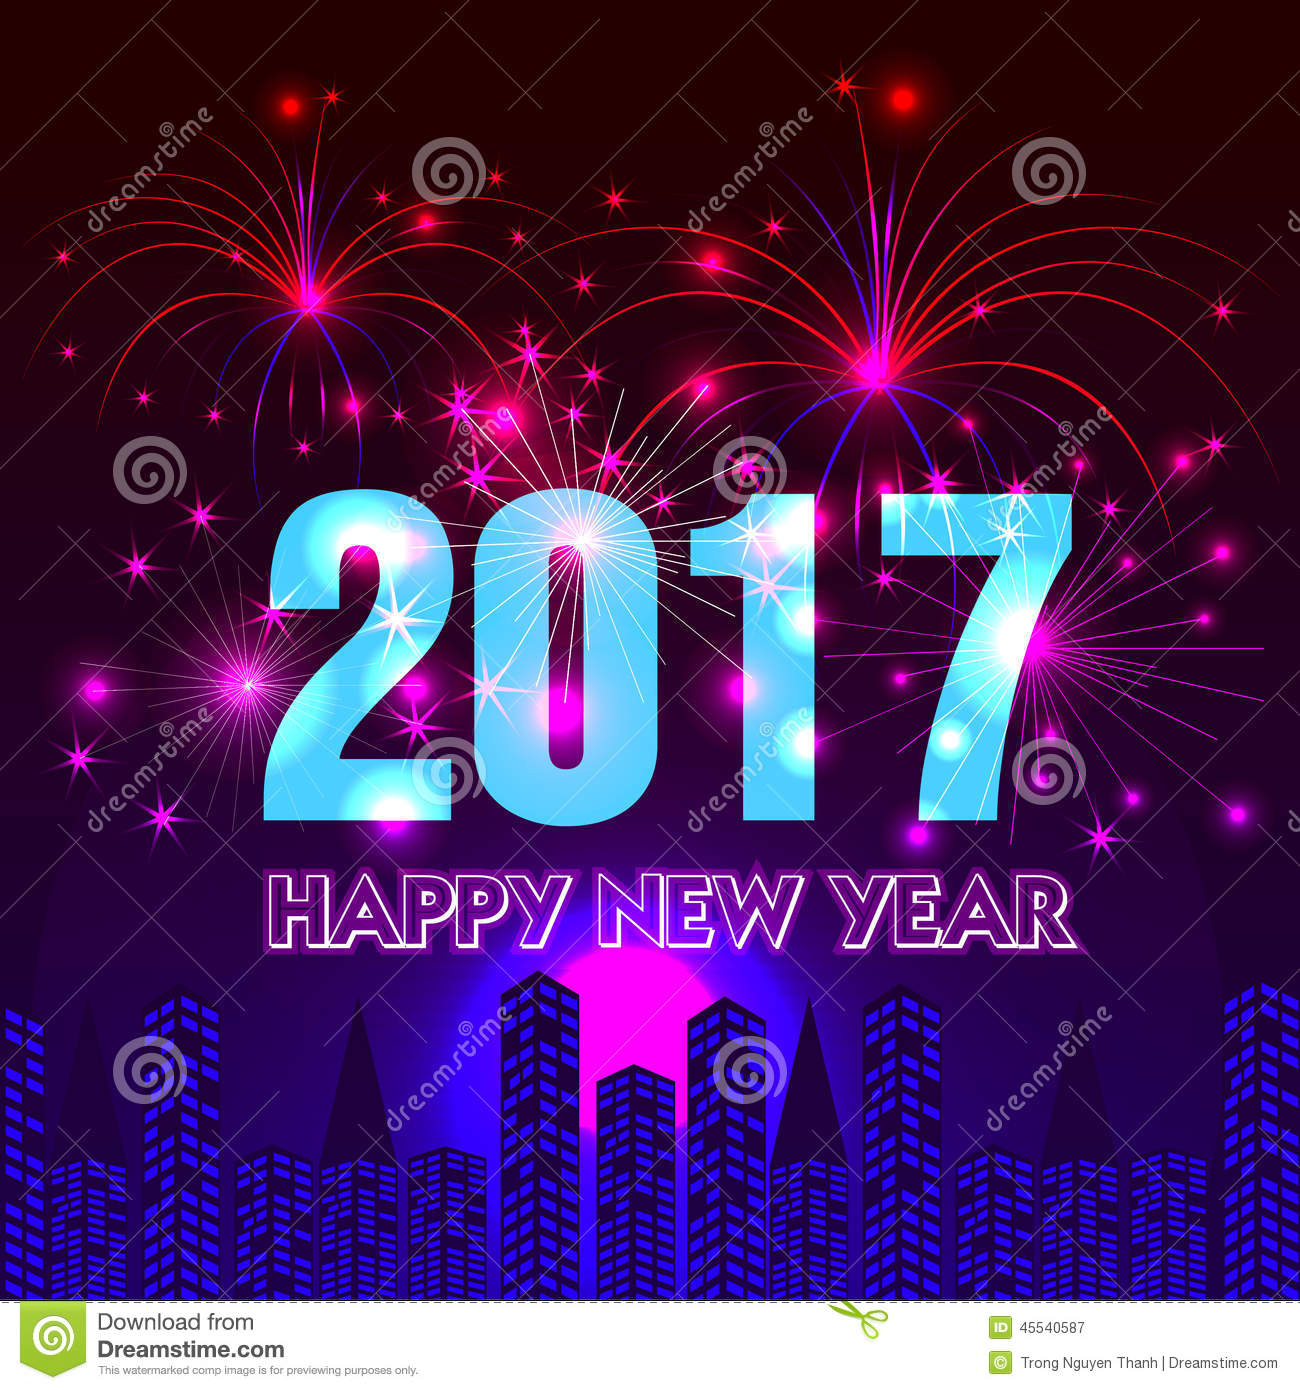 Happy New Year 2017 With Fireworks Background Stock Vector - Image ...